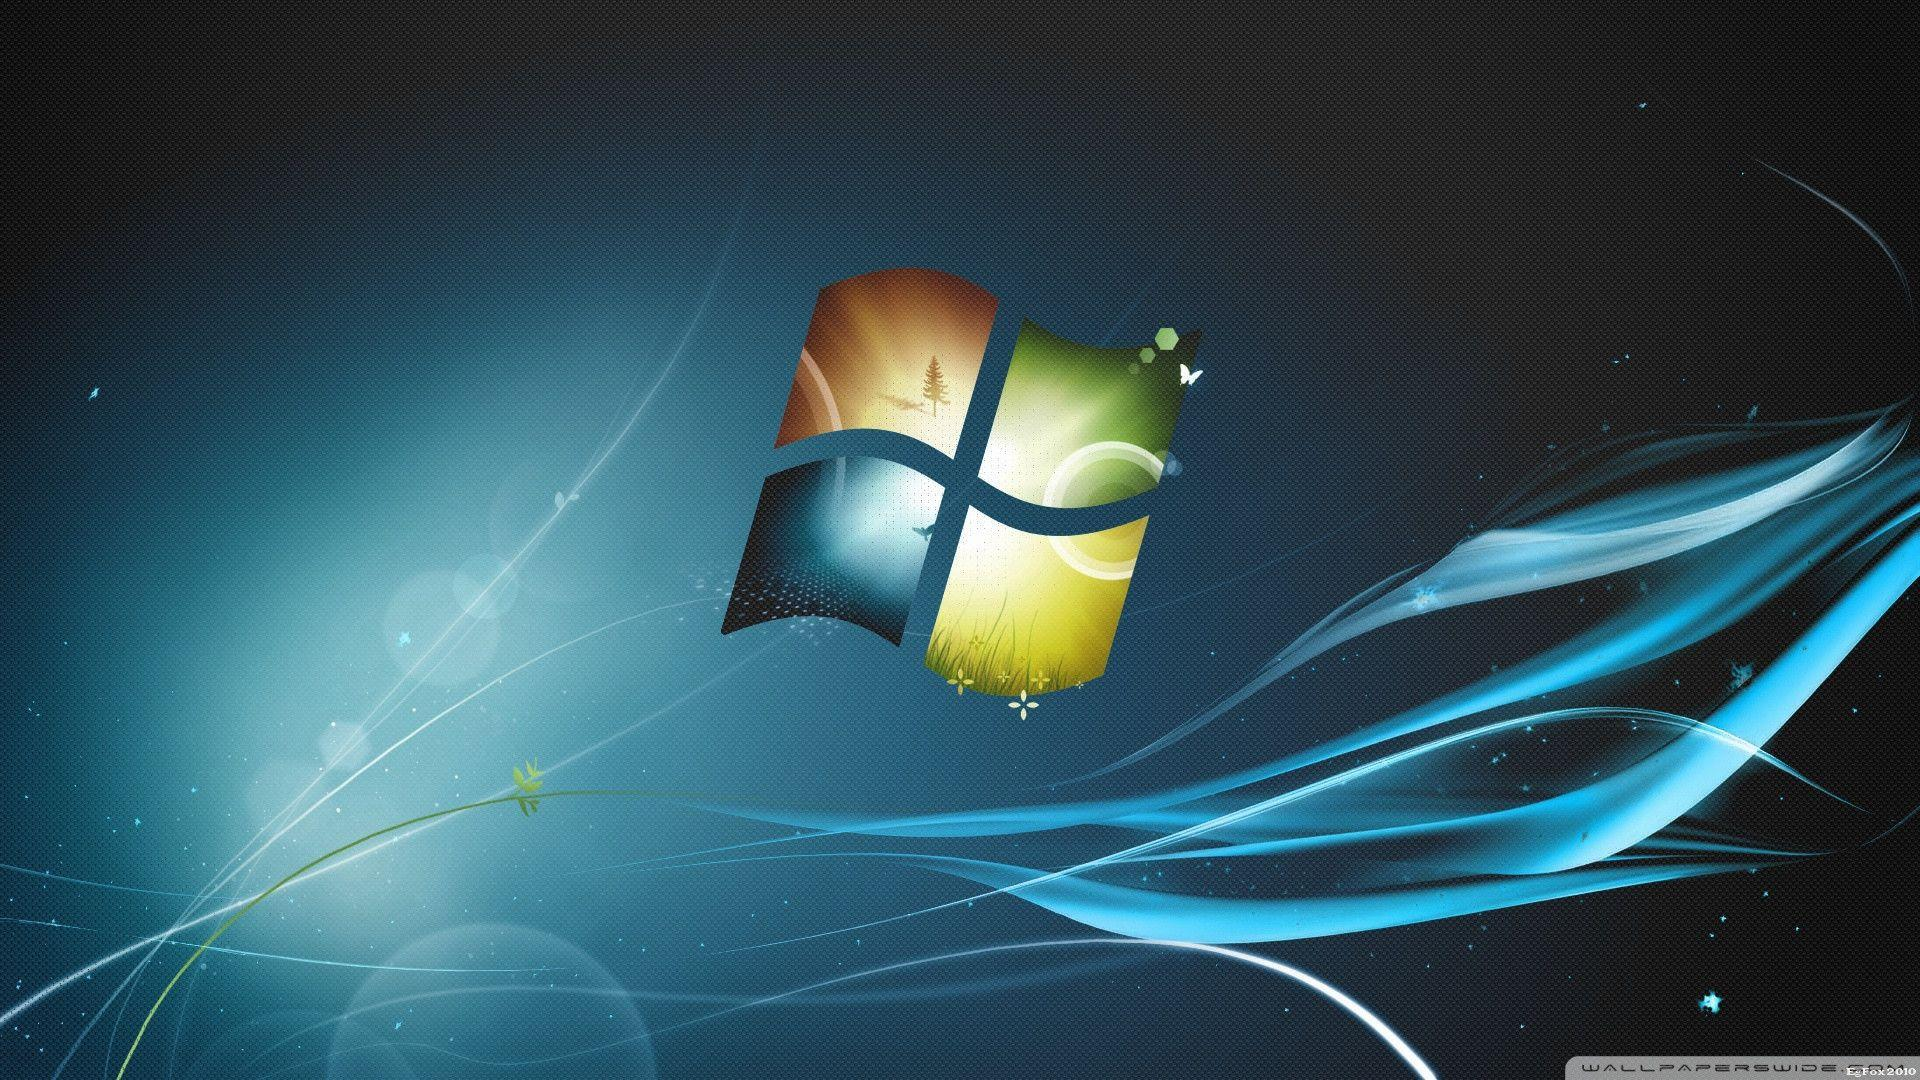 Wallpapers For > Windows 7 Backgrounds 1920x1080